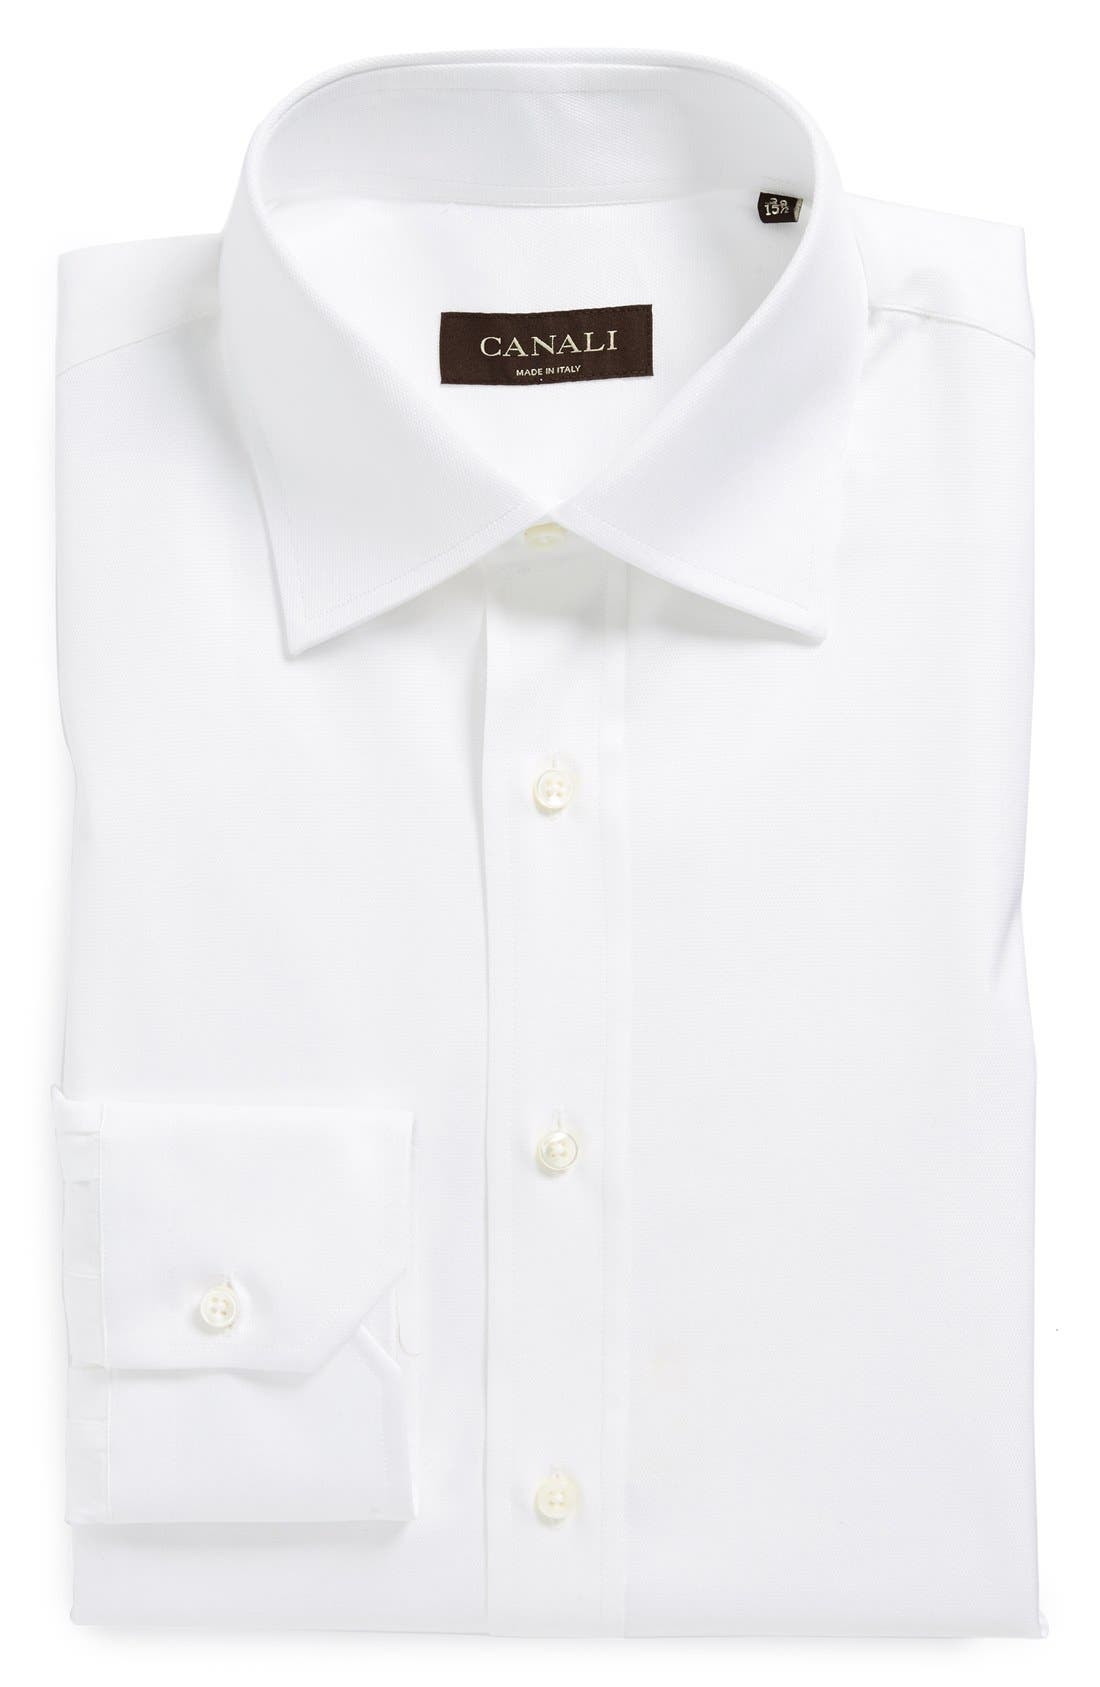 Alternate Image 1 Selected - Canali Regular Fit Solid Dress Shirt